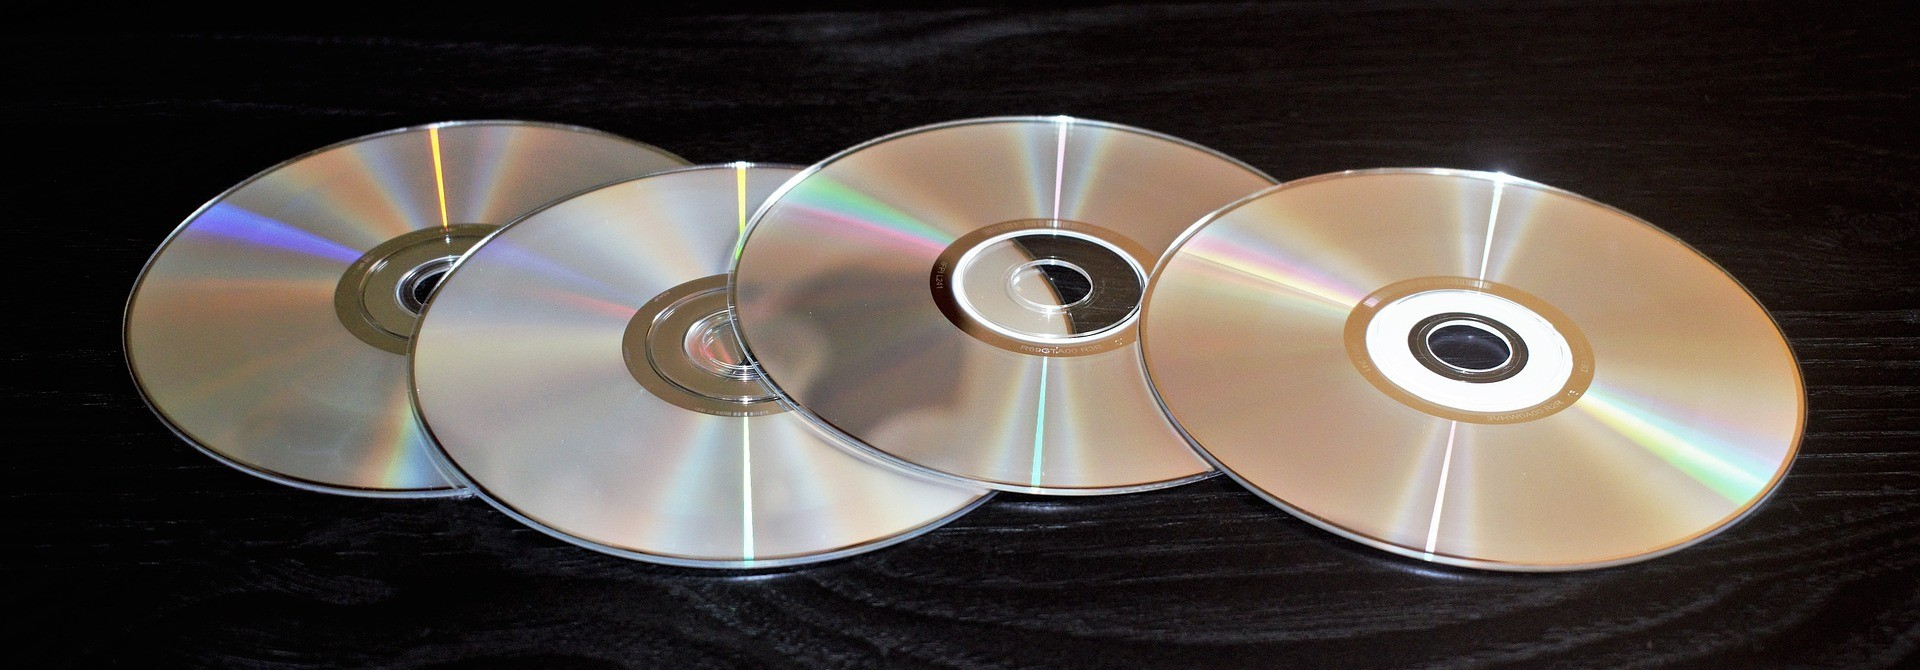 DVD Duplication Services Industry